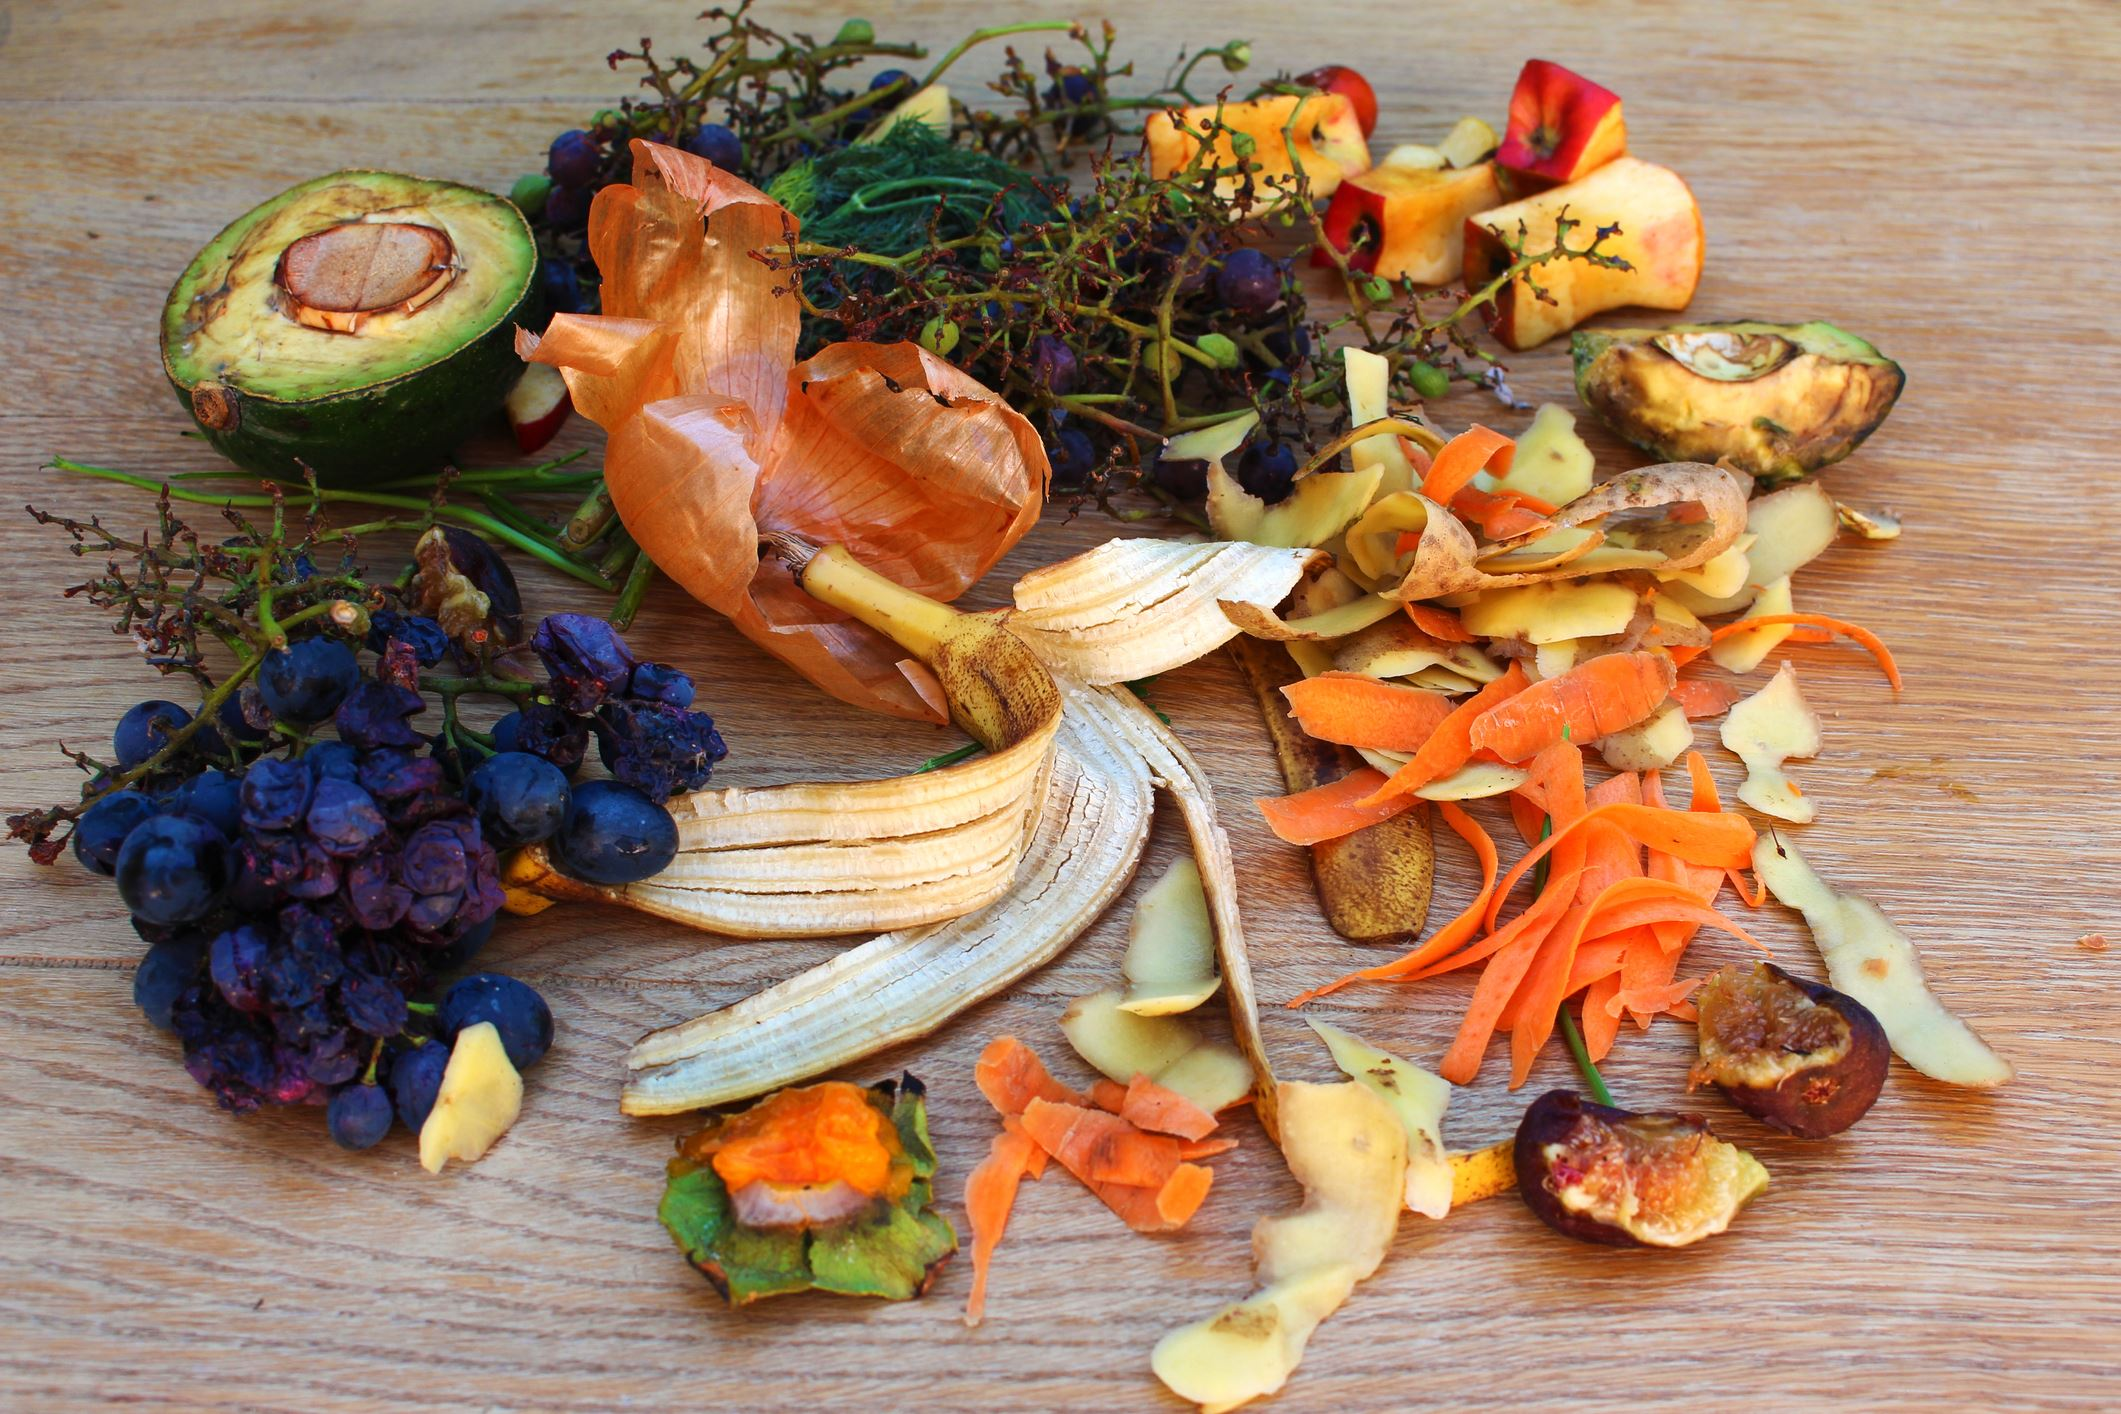 Food scraps for organics collection